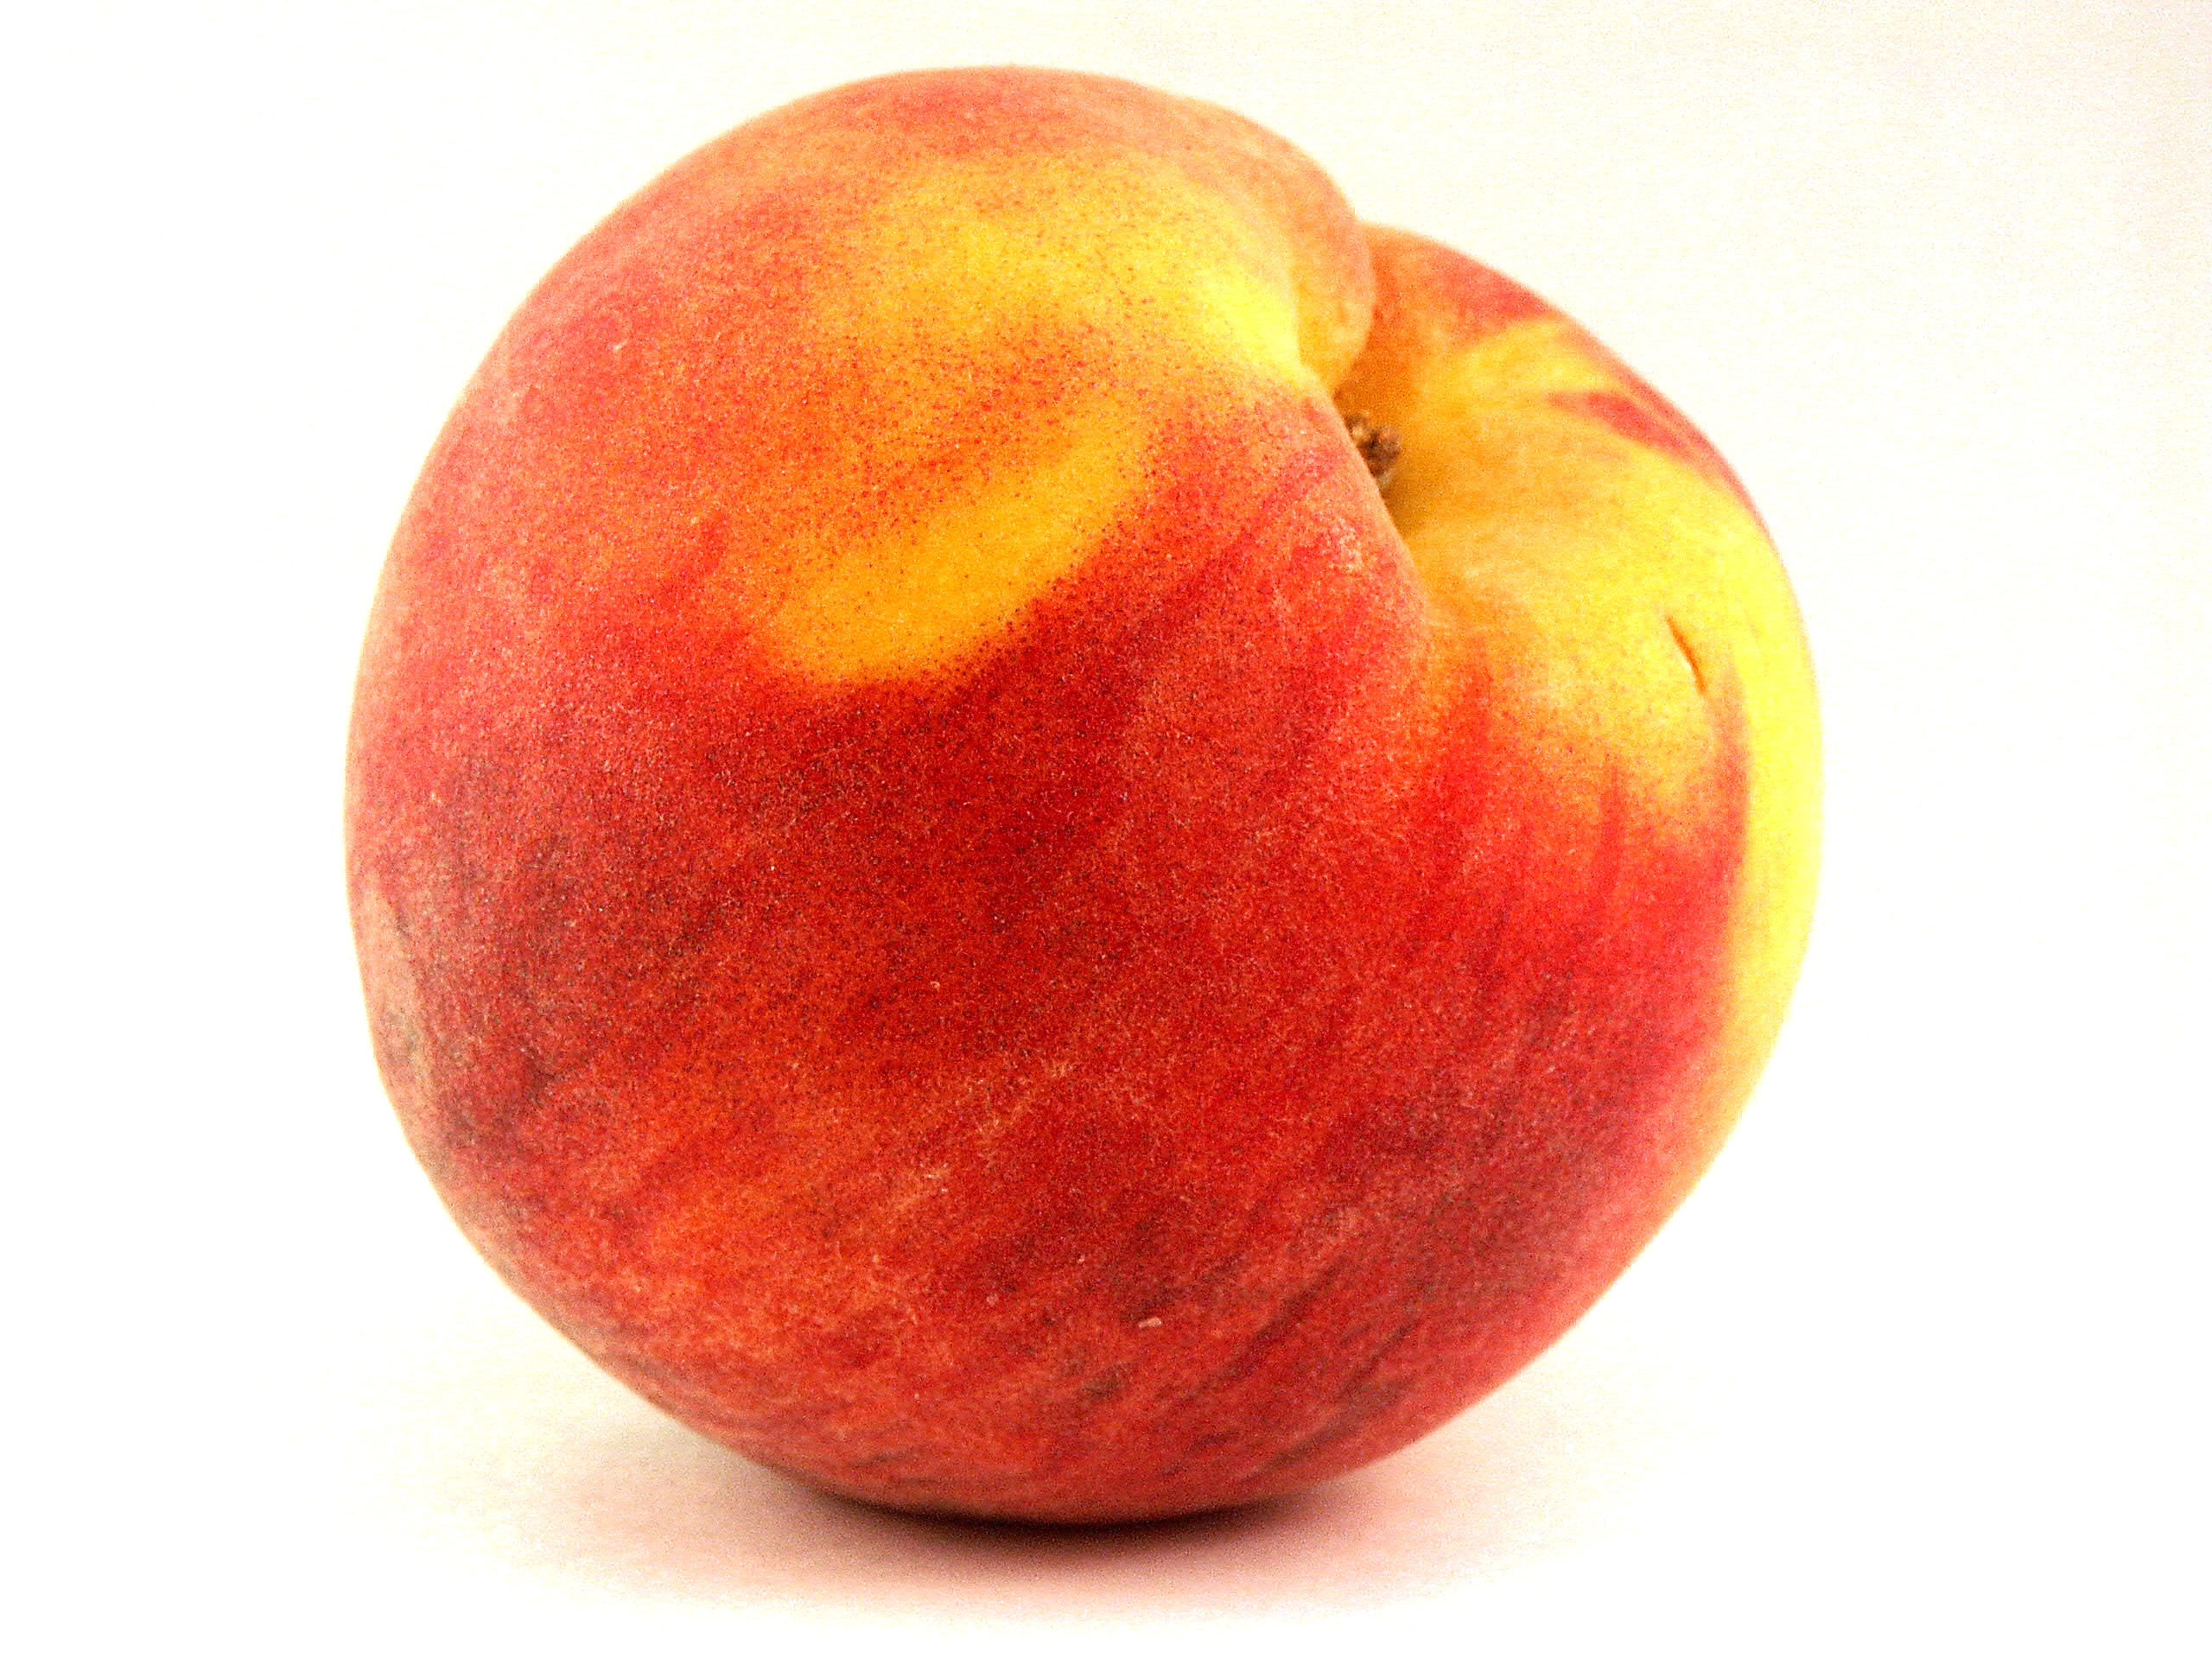 Images of Peach | 2560x1920